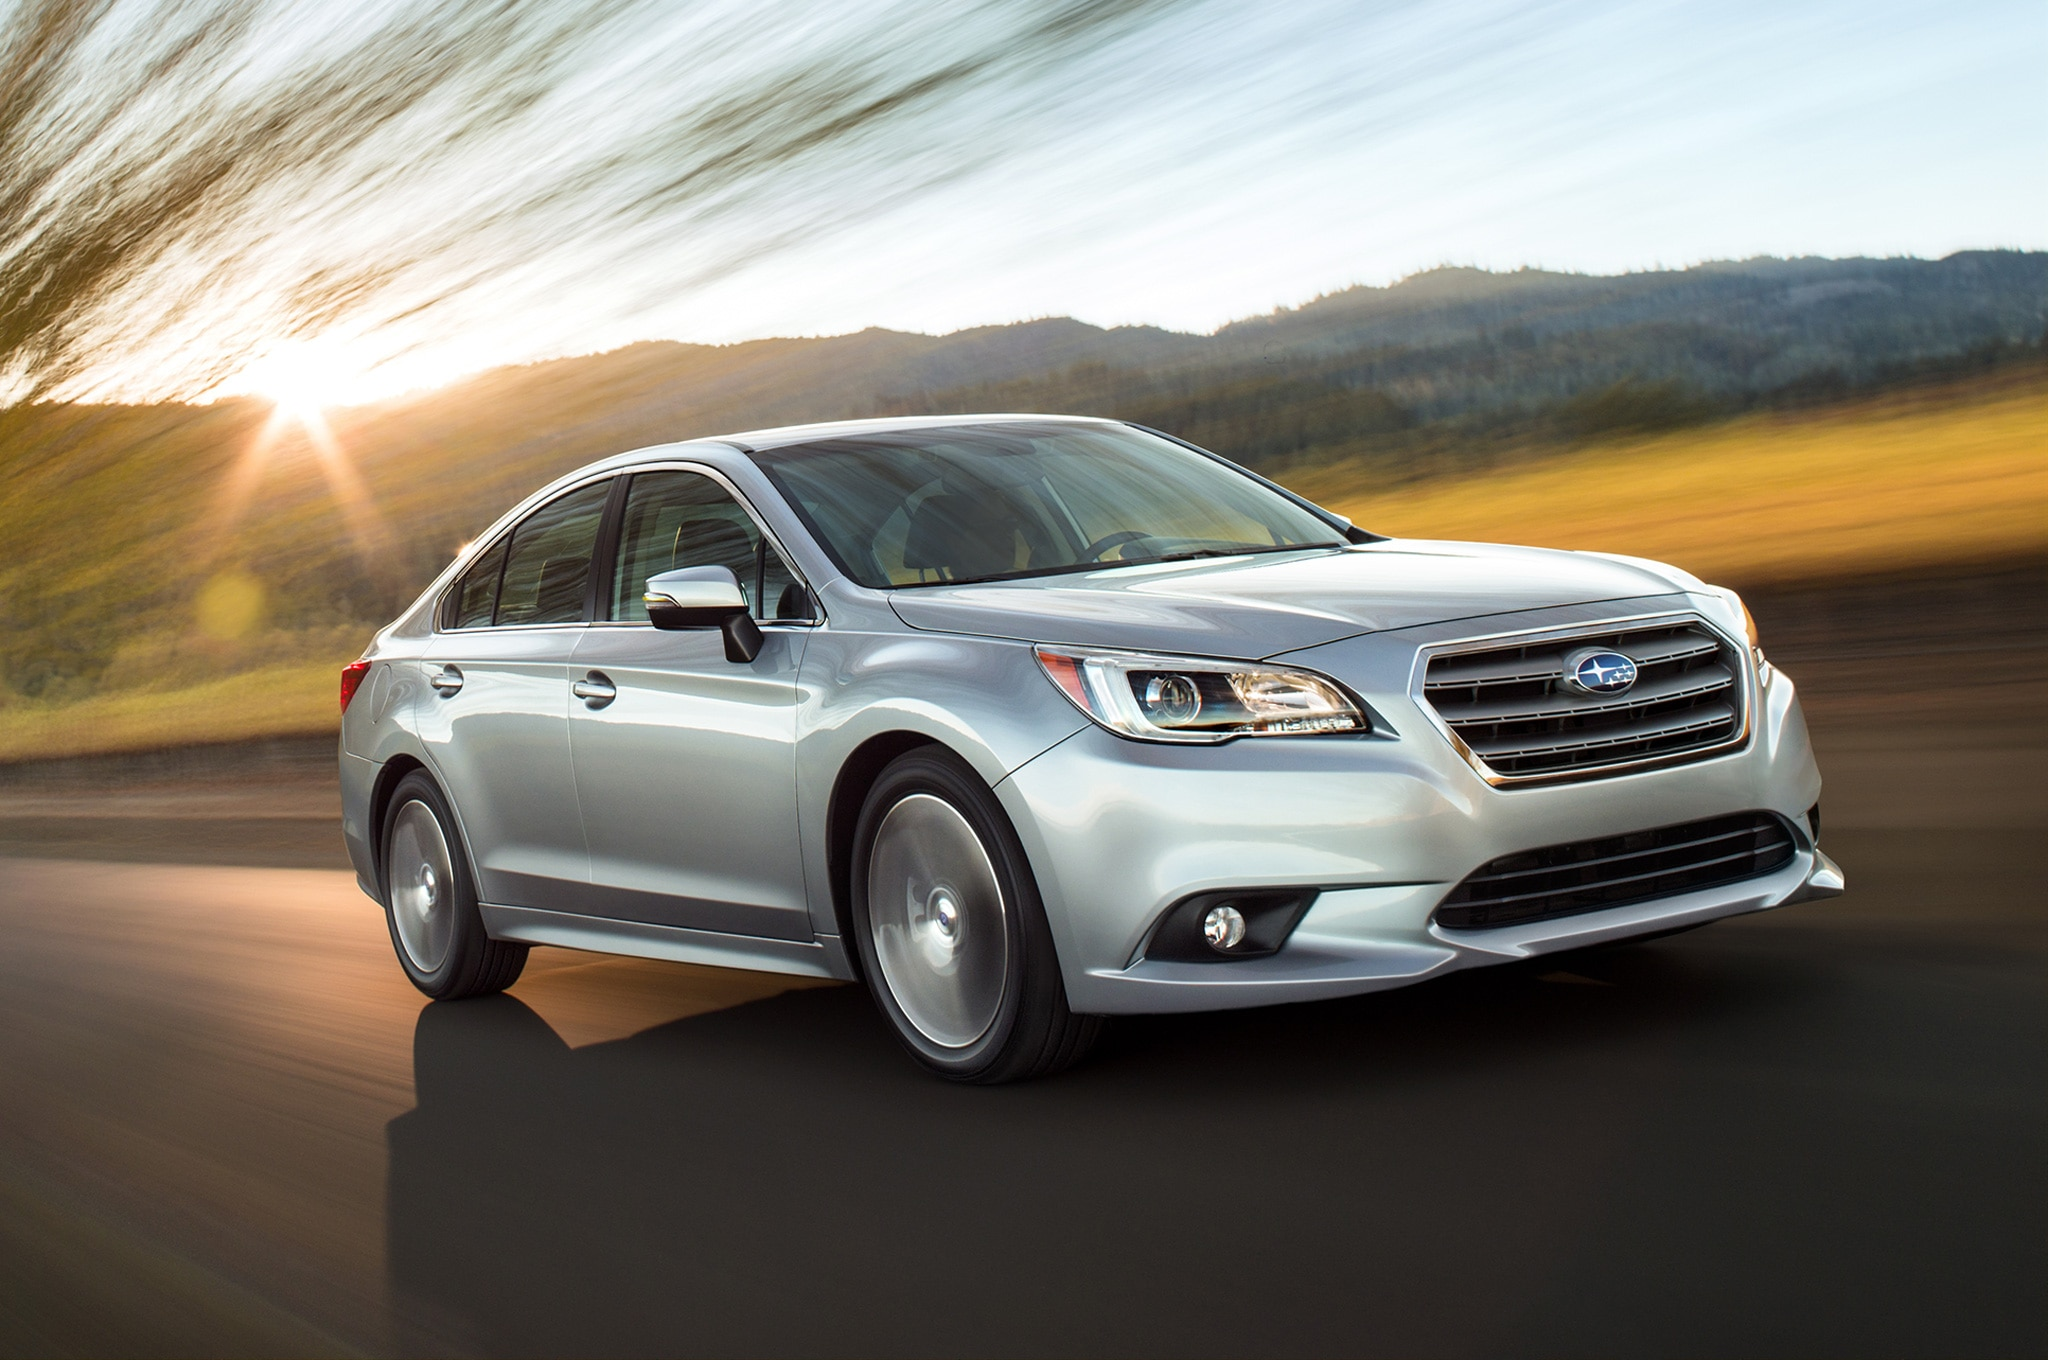 2015 Subaru Legacy Front Side View In Motion1